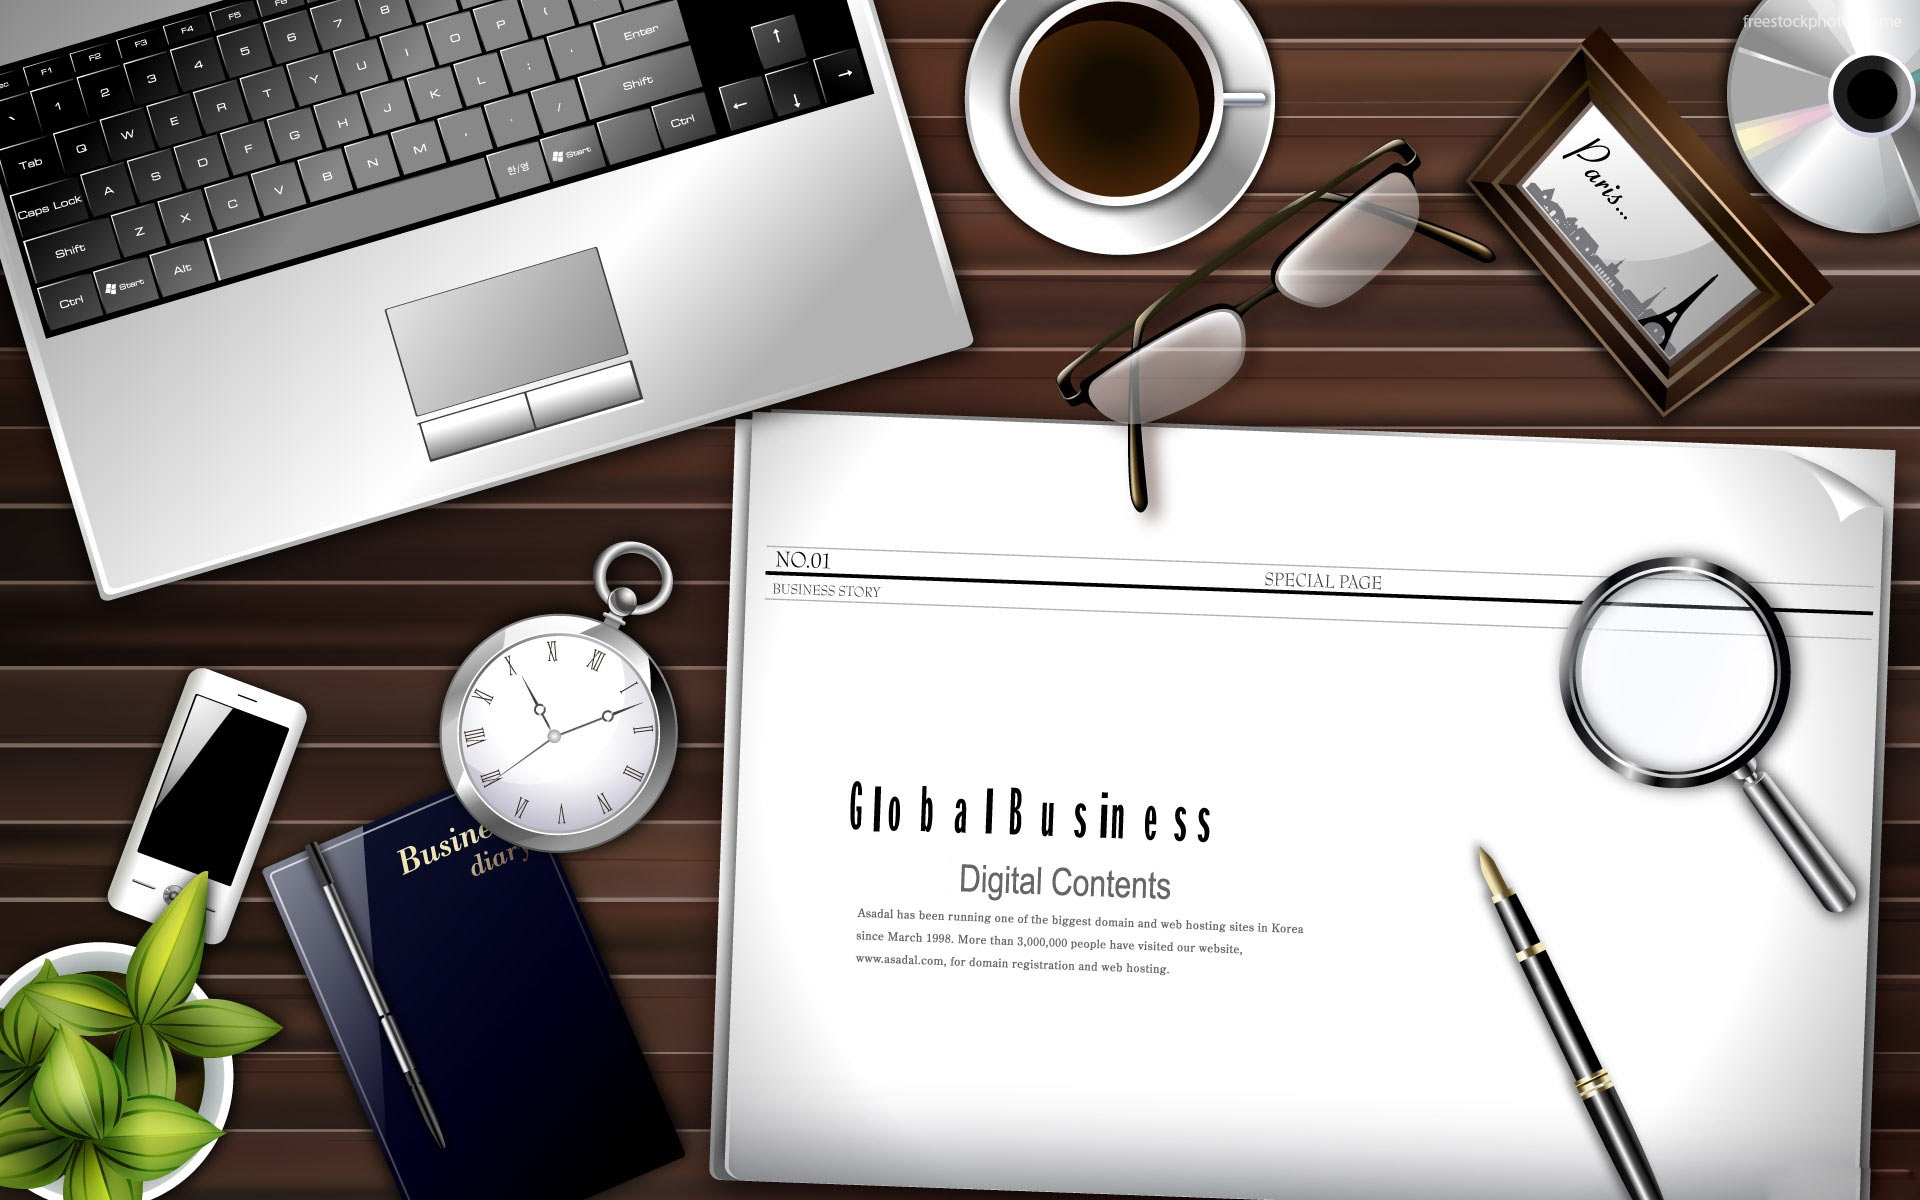 of desk in office images photography Royalty photography 1843 1920x1200